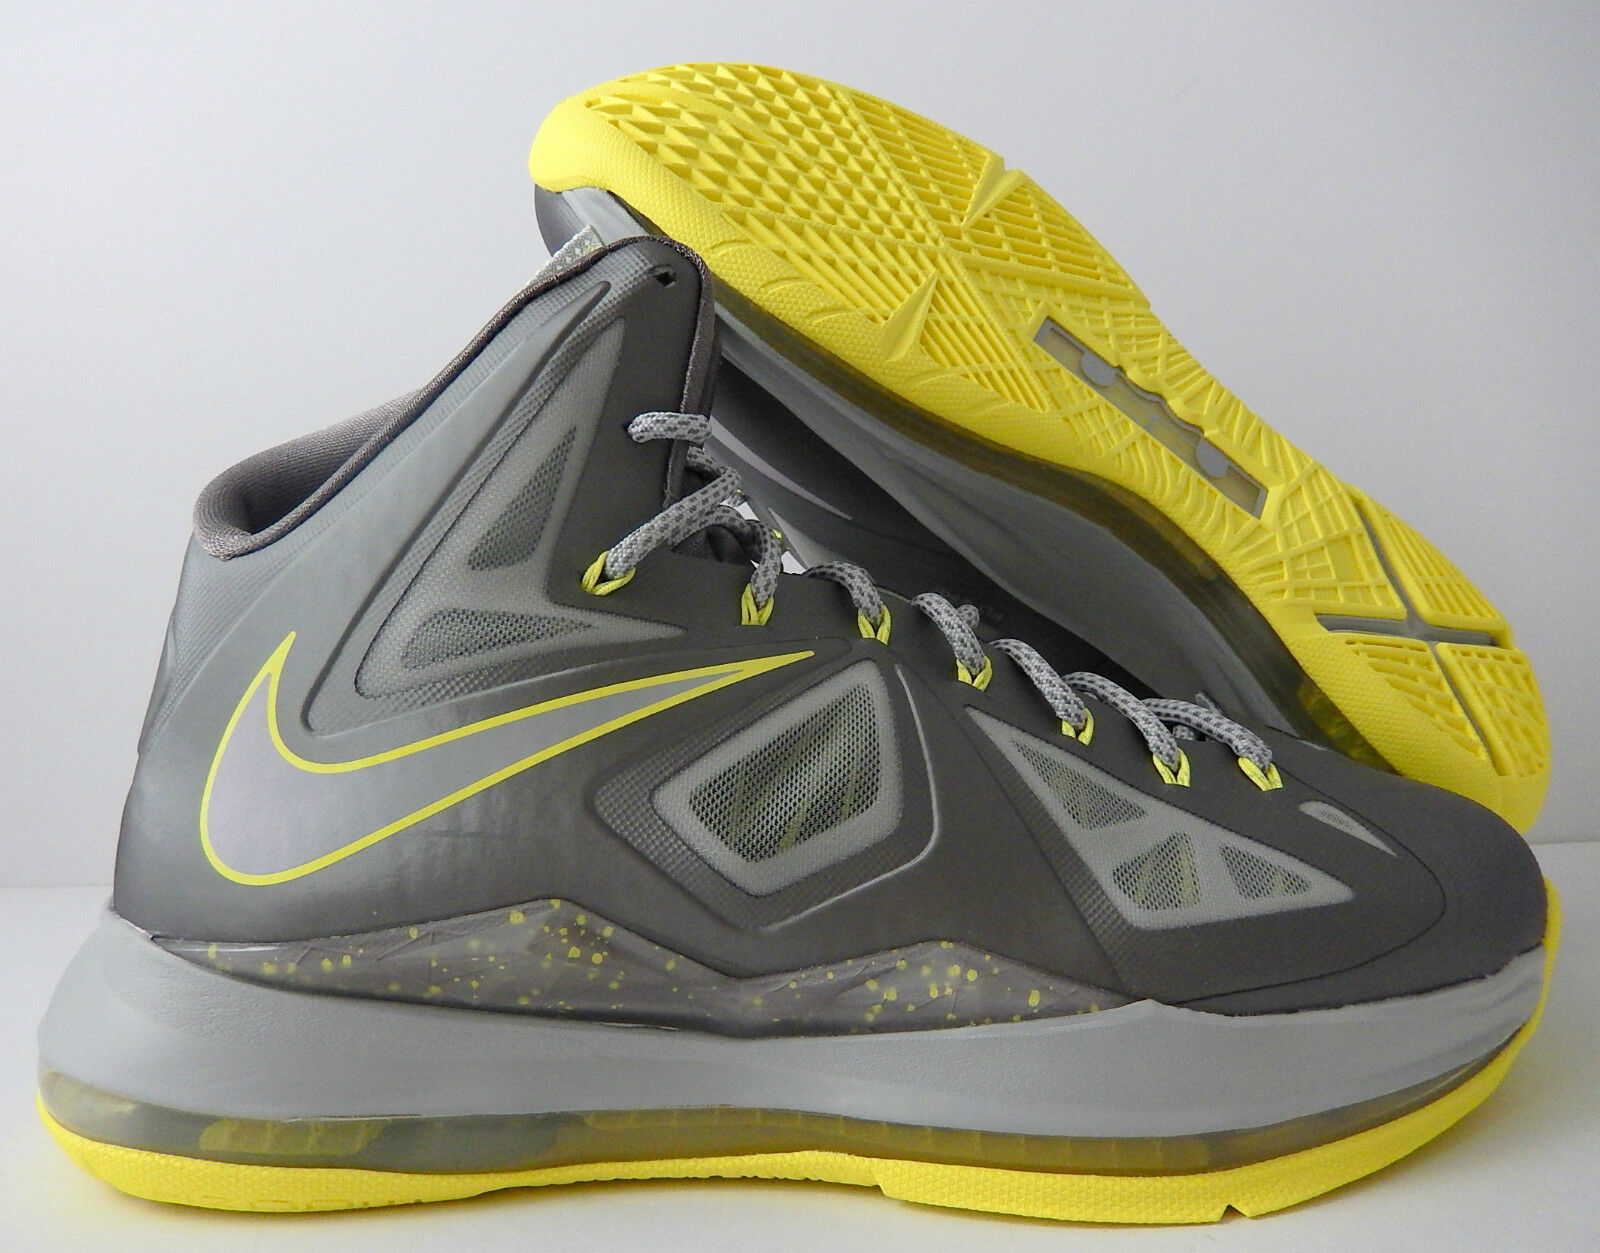 NIKE LEBRON 10 X SPORT GREY-ELECTRIC YELLOW Price reduction Great discount